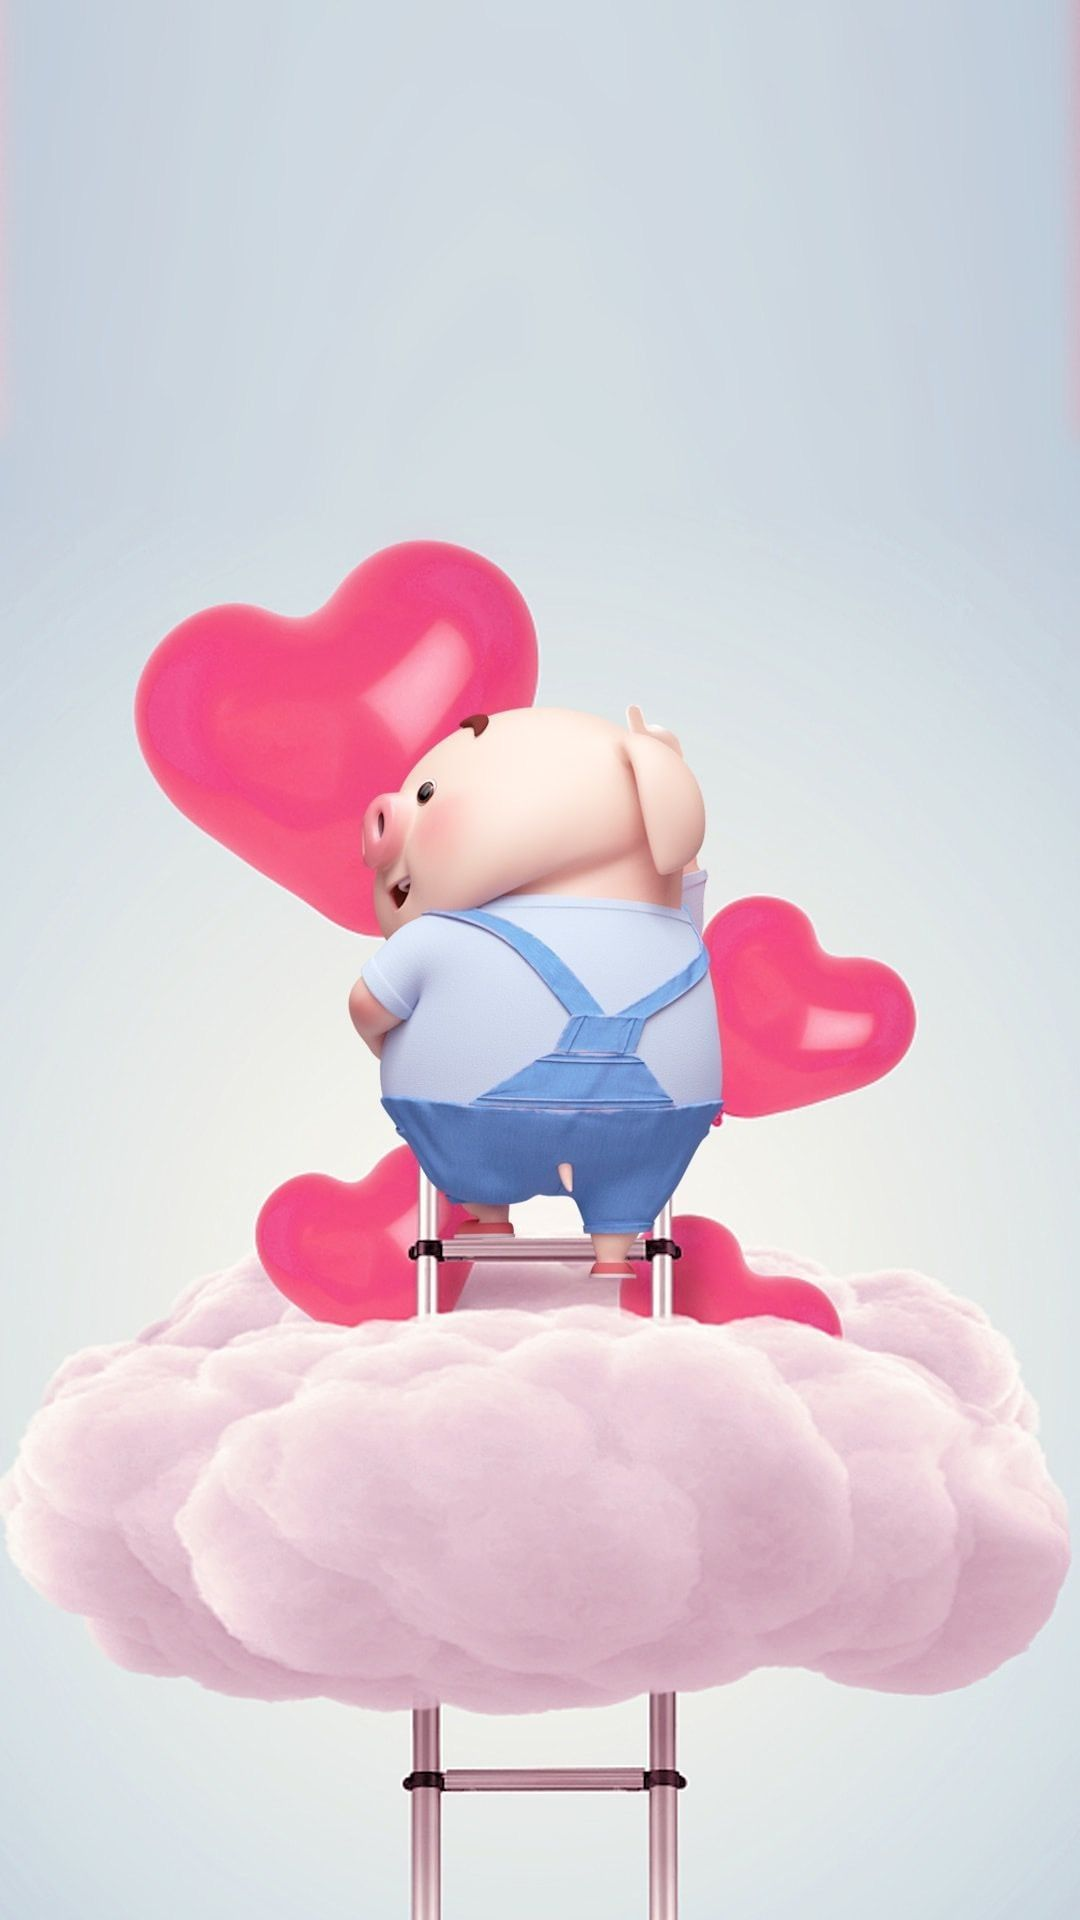 Pin by 惠玲 黃 on 豬小屁(Love) Pig wallpaper, Pig illustration